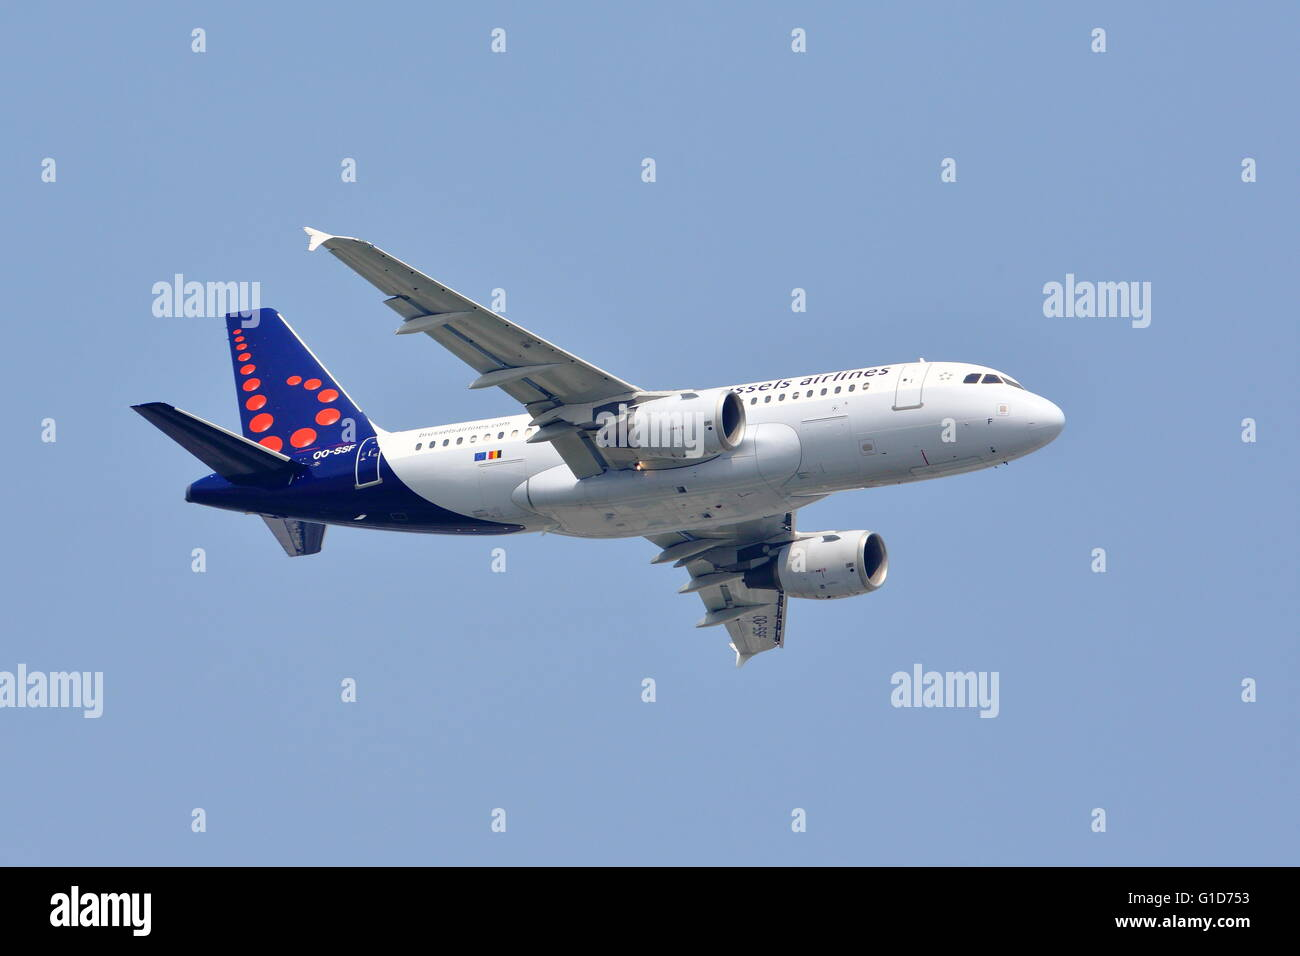 Brussels Airlines Airbus A319-111 OO-SSF departing from London Heathrow Airport, UK - Stock Image